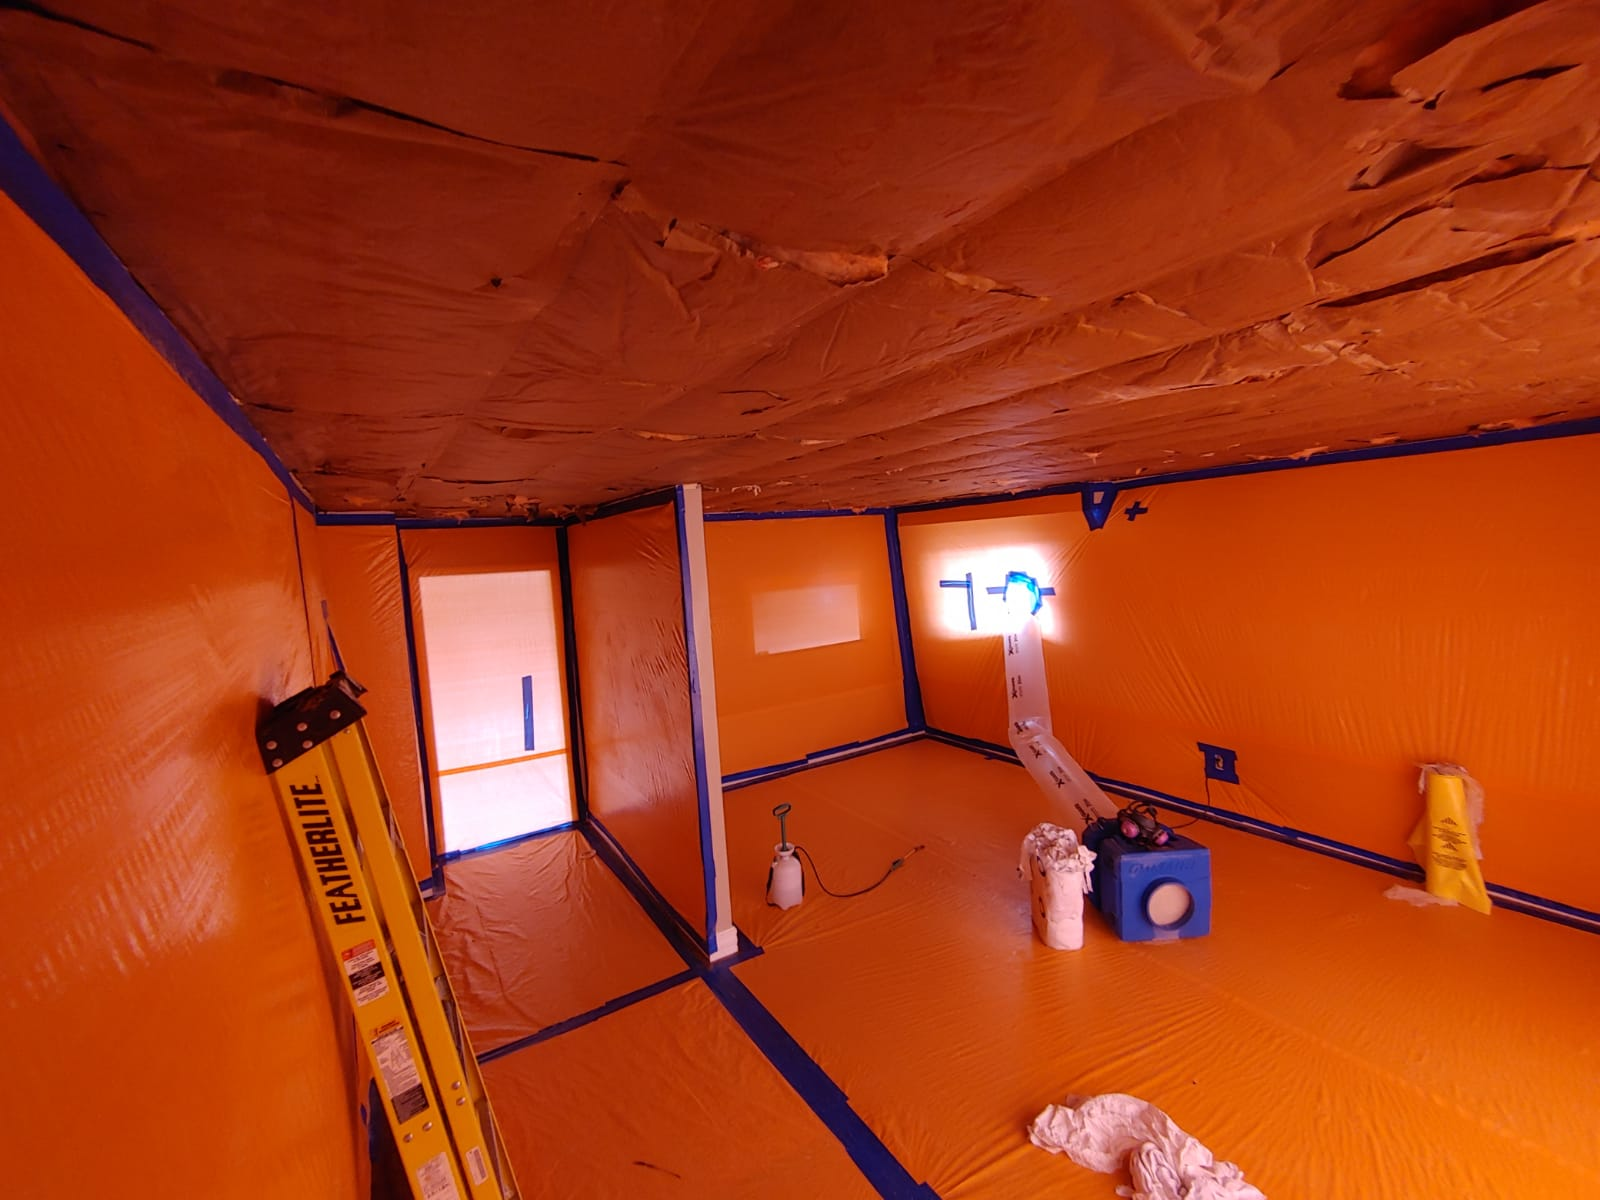 Removal of asbestos containing texture and drywall ceiling udner type III enclosure in a residence in Gerorgetown, ON